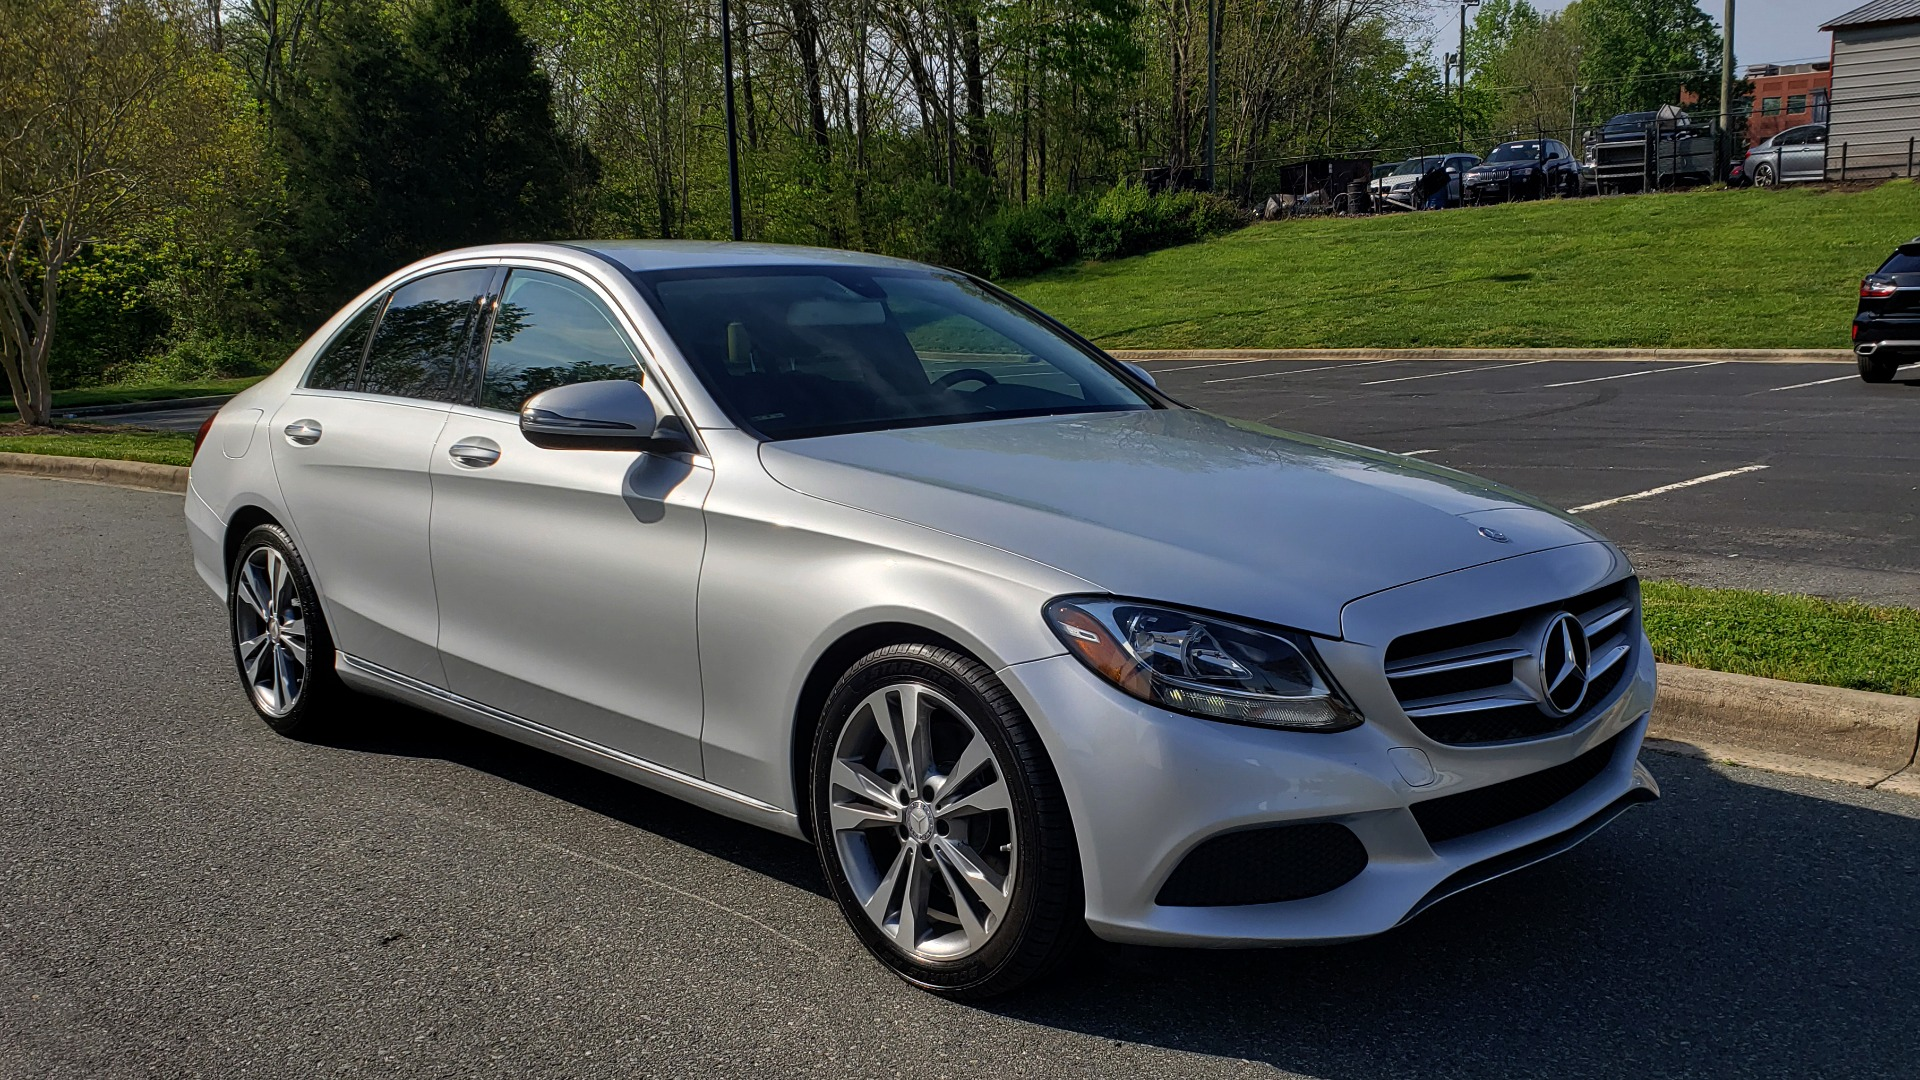 Used 2016 Mercedes-Benz C-CLASS C 300 PREMIUM / NAV / SNRF/ HTD STS / REARVIEW / BSM for sale Sold at Formula Imports in Charlotte NC 28227 4